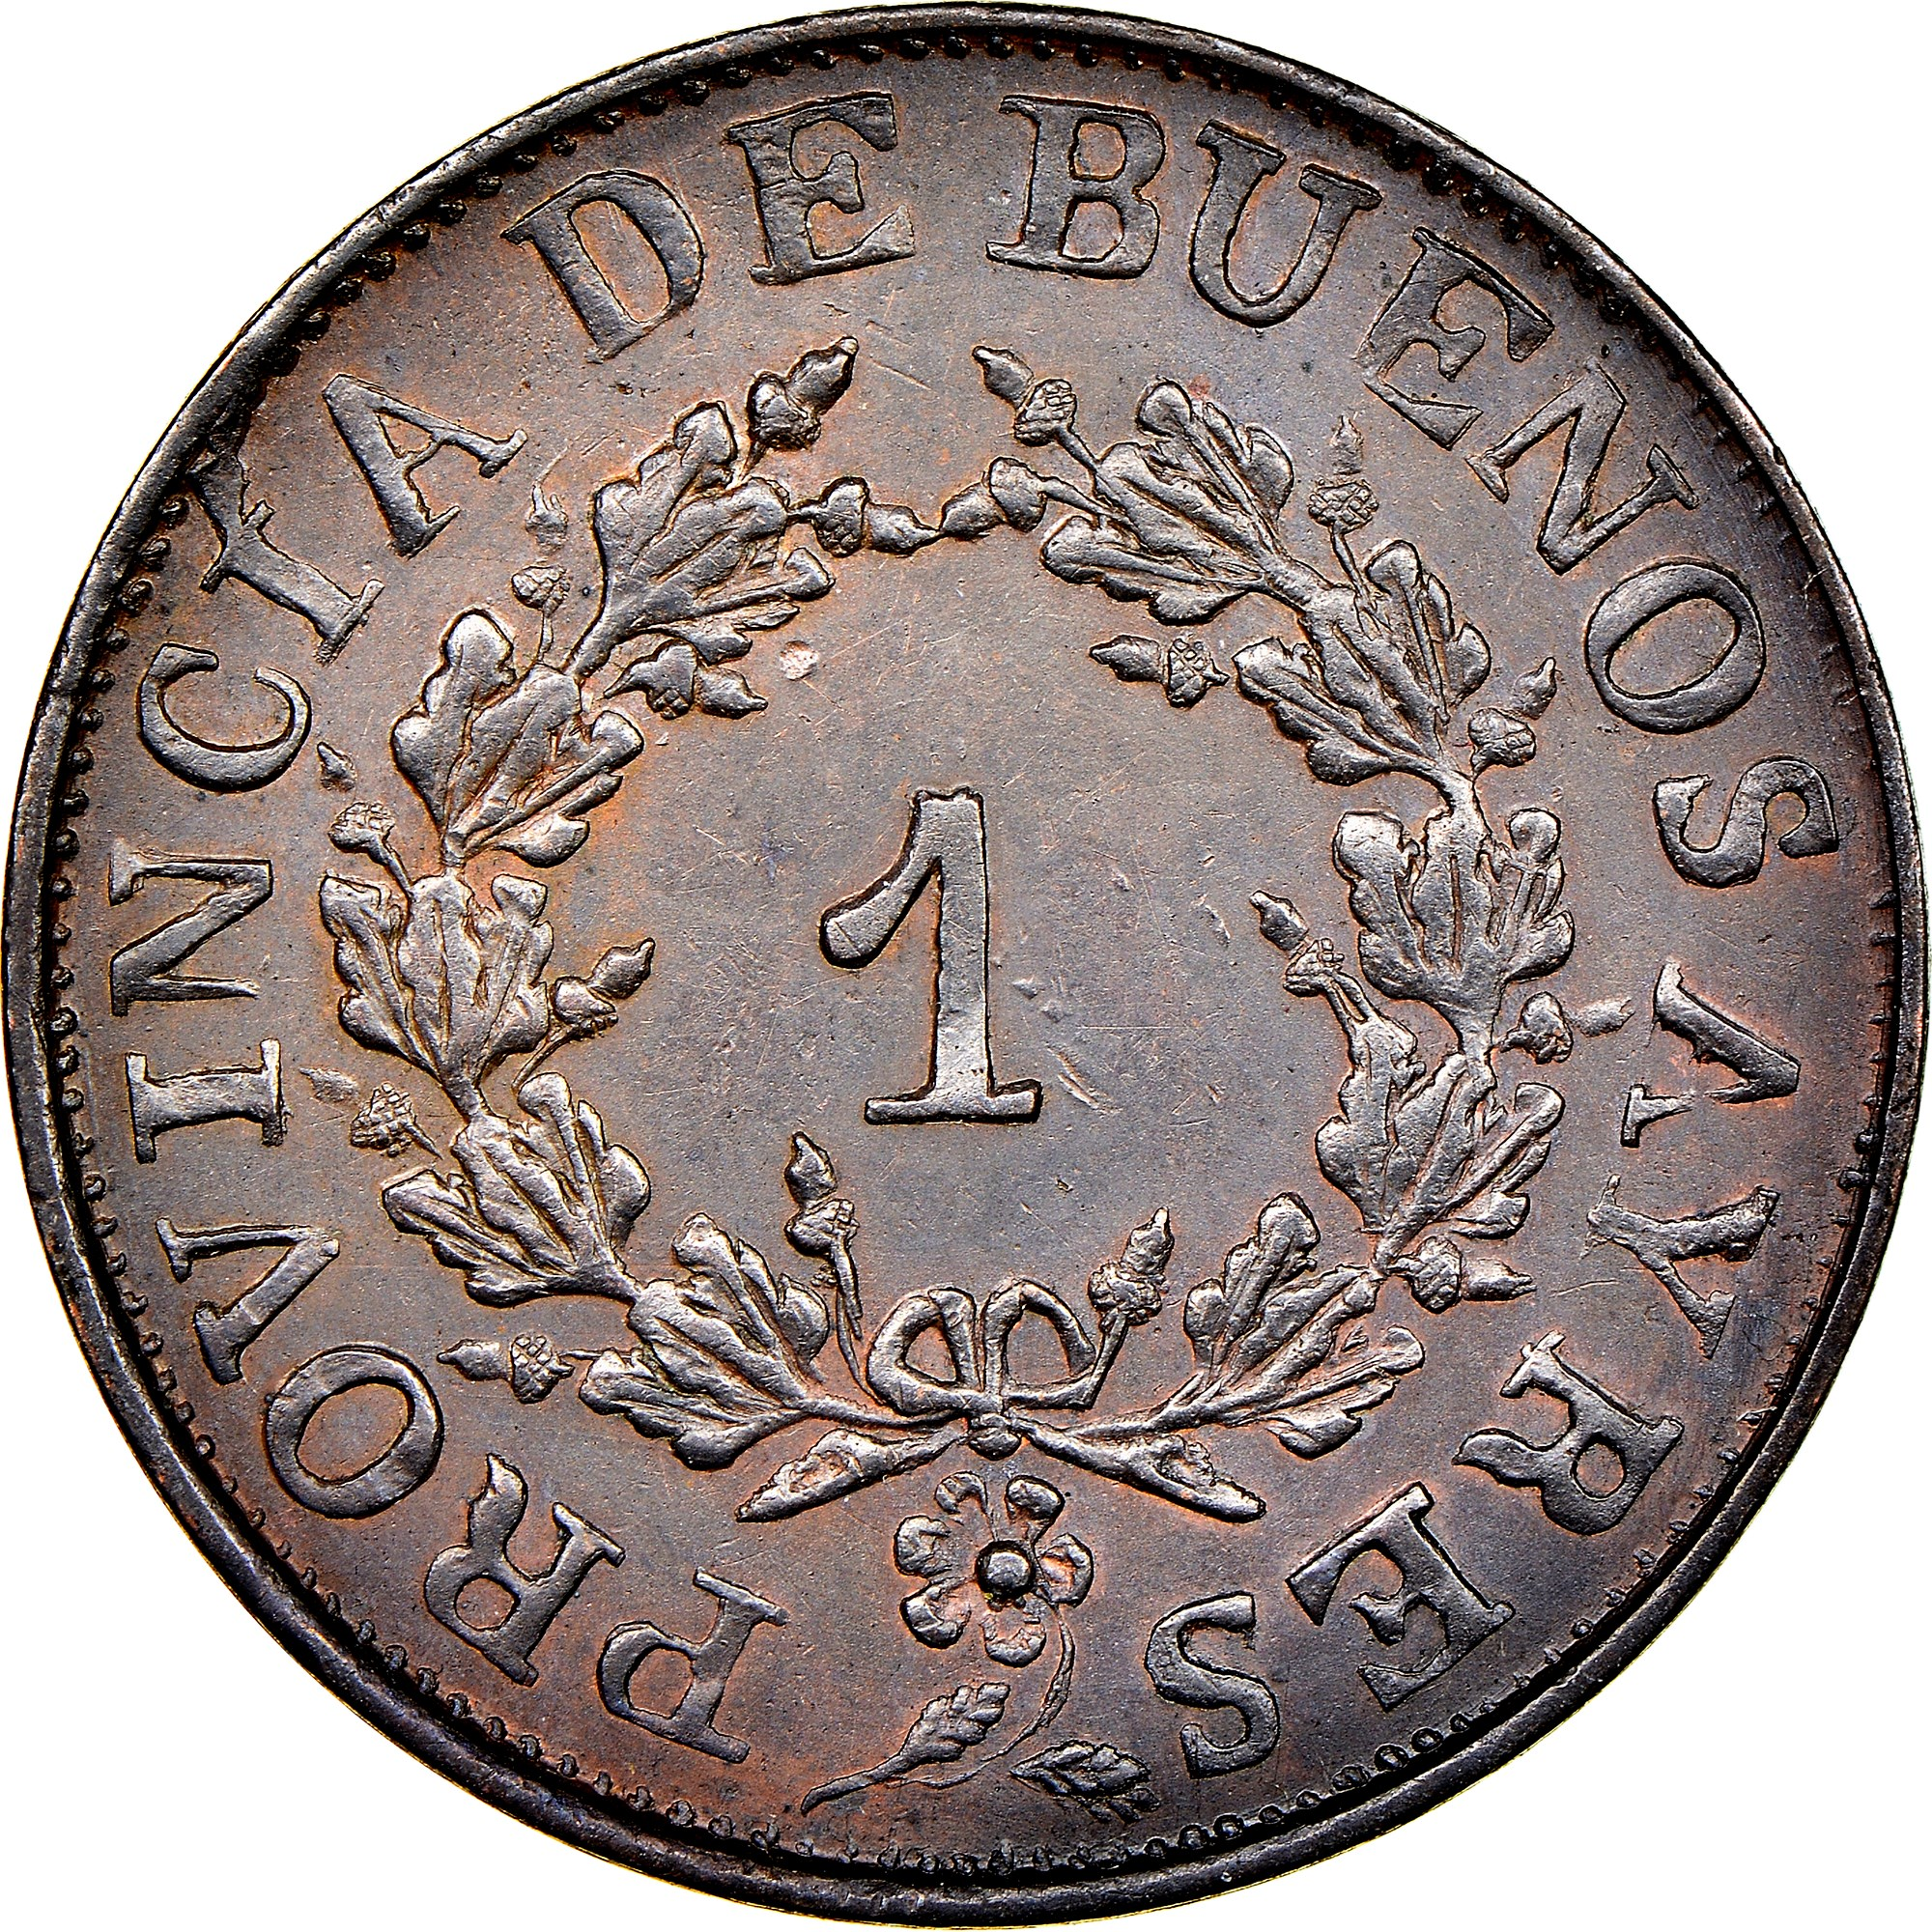 Argentina BUENOS AIRES Real obverse